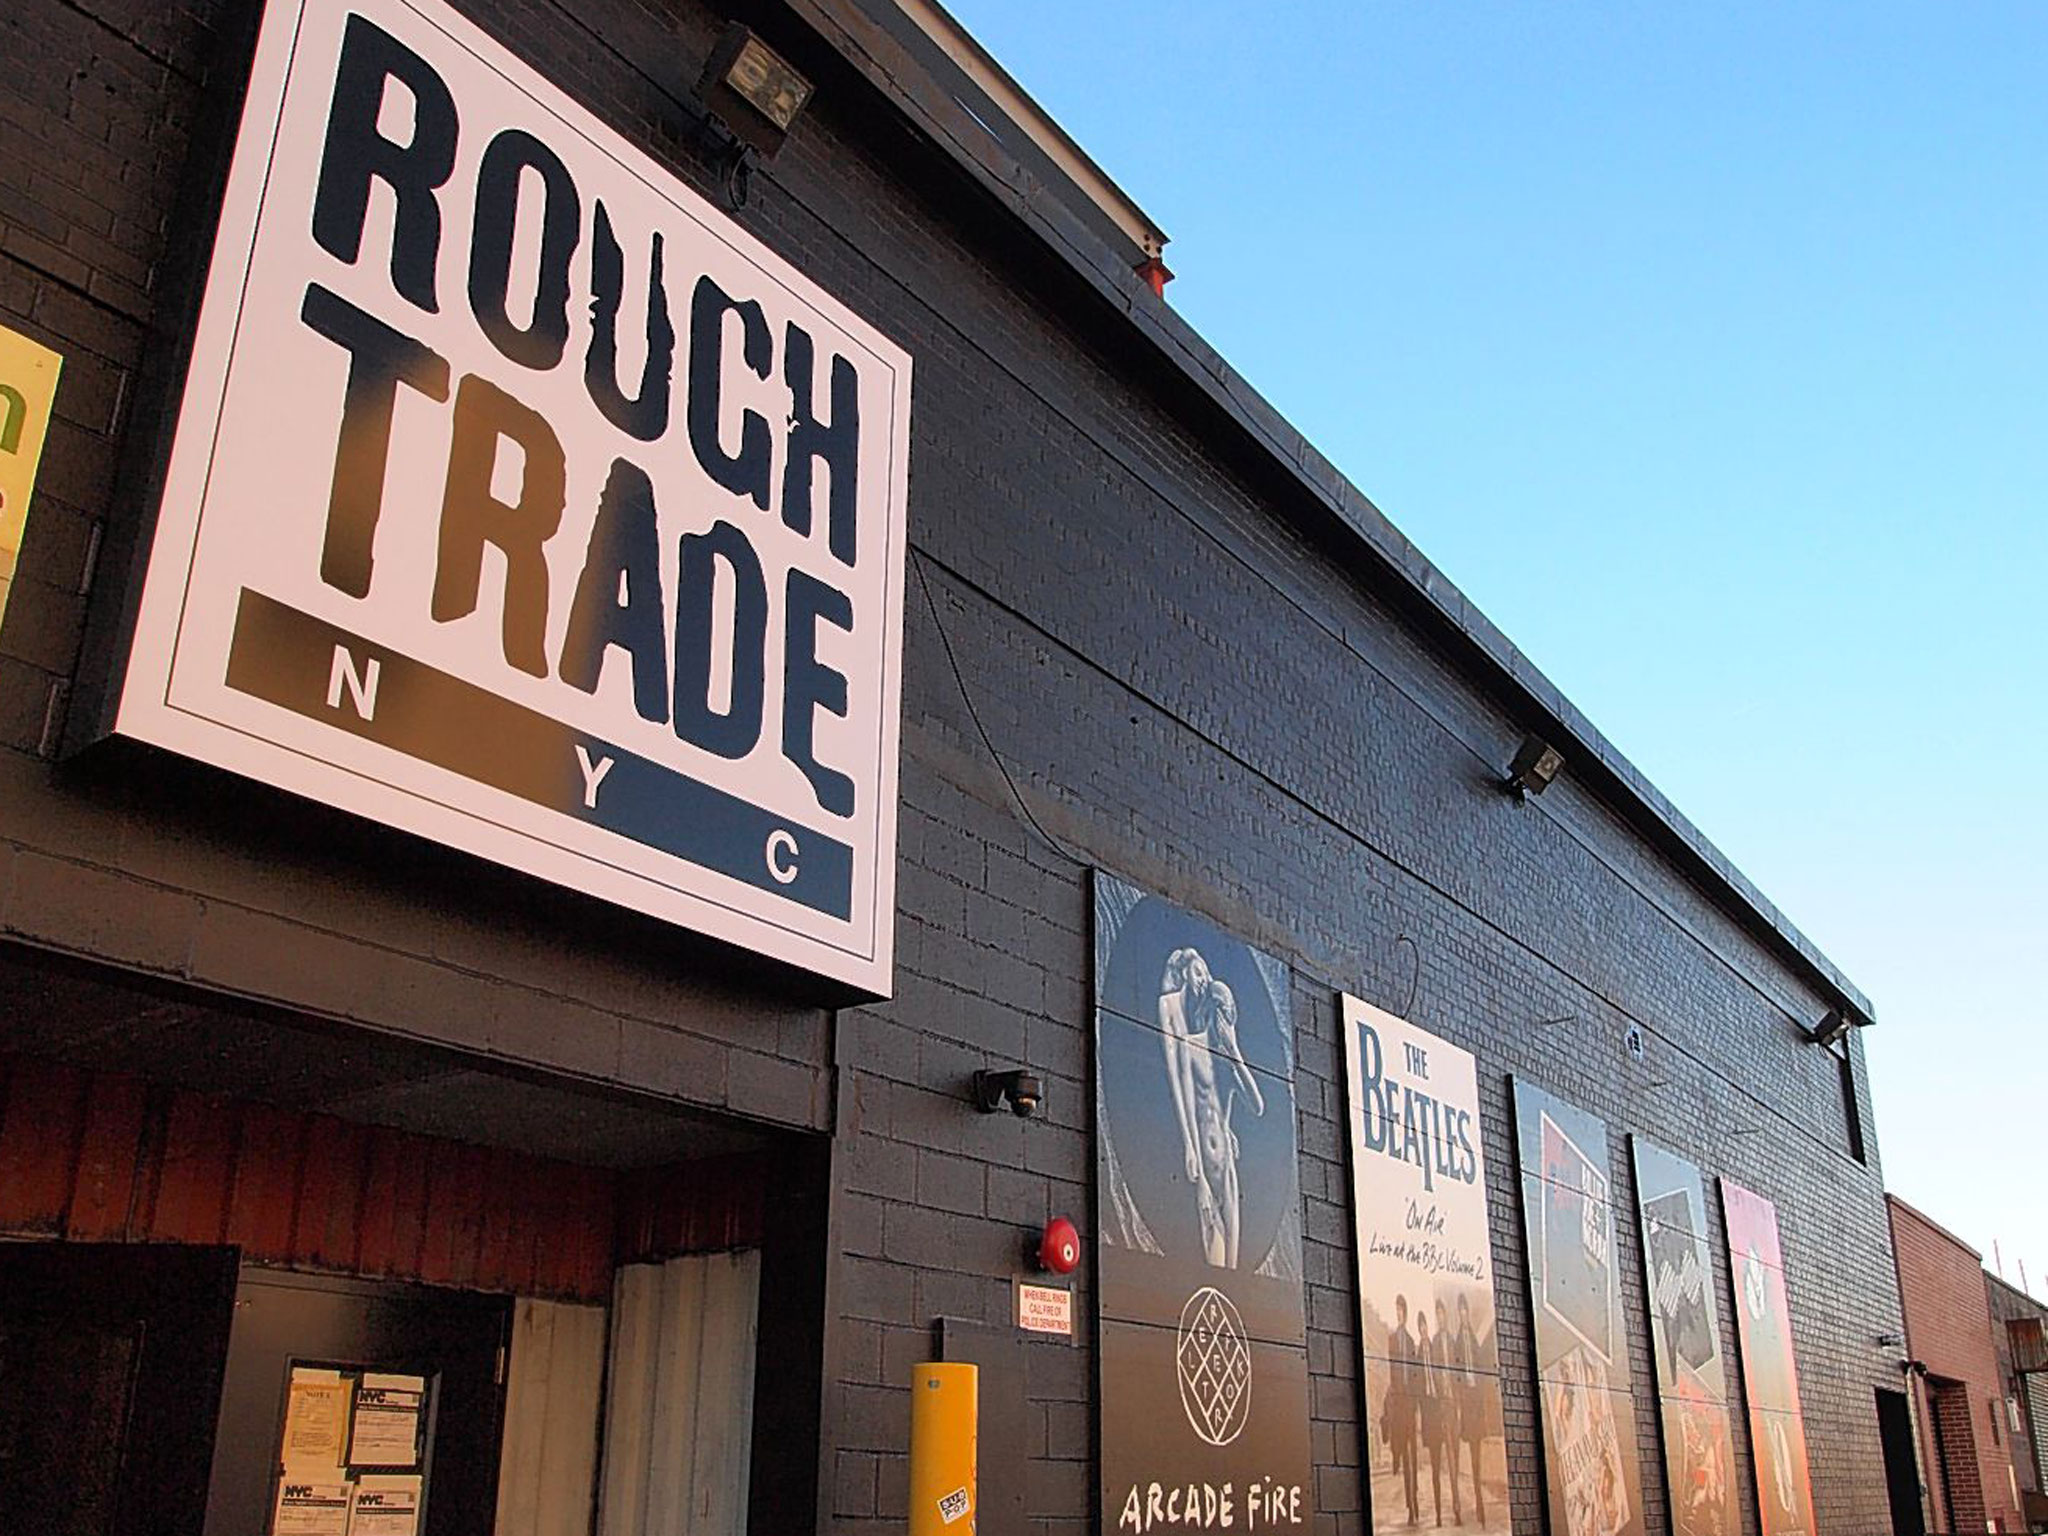 Rough Trade, Sick Beats